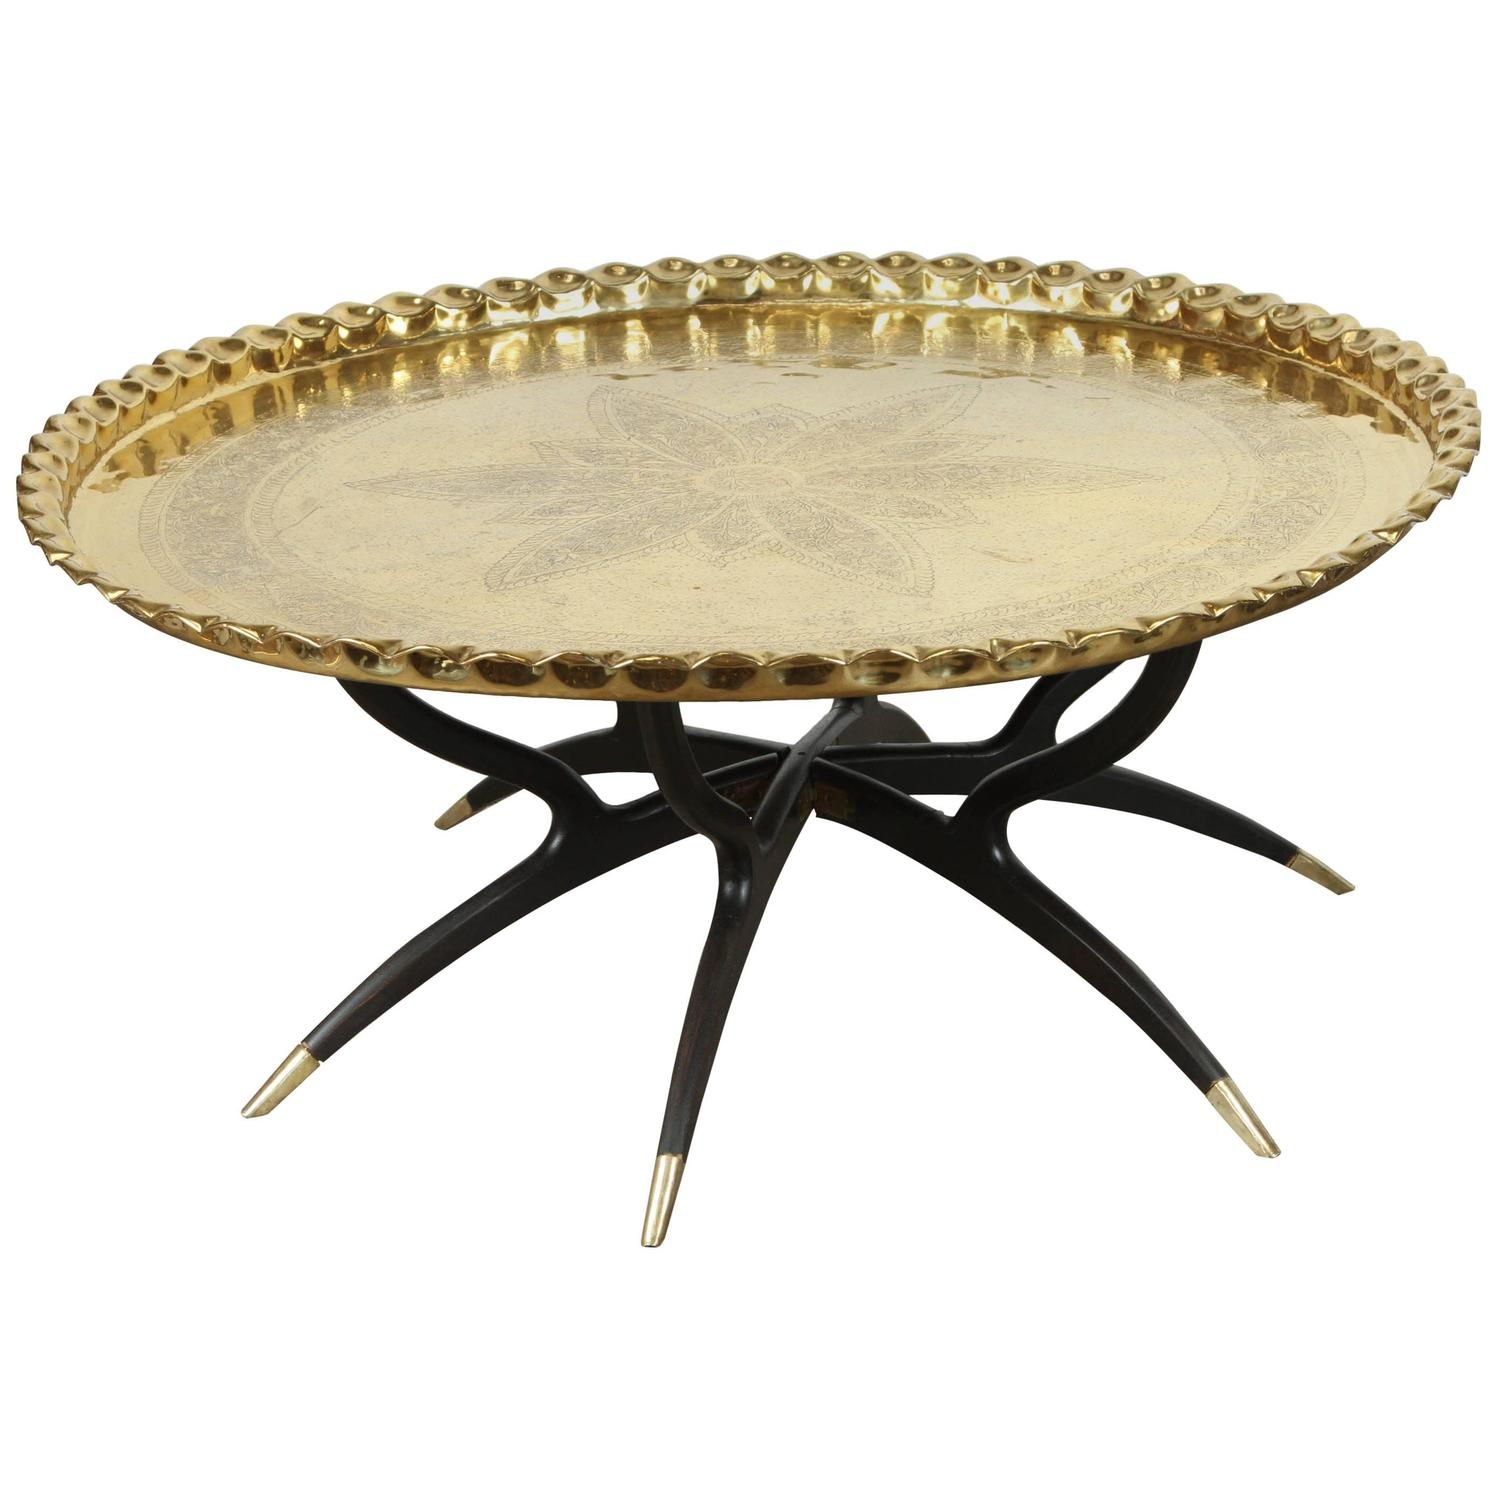 Polished Brass Tray Coffee Table on Spider Leg at 1stdibs